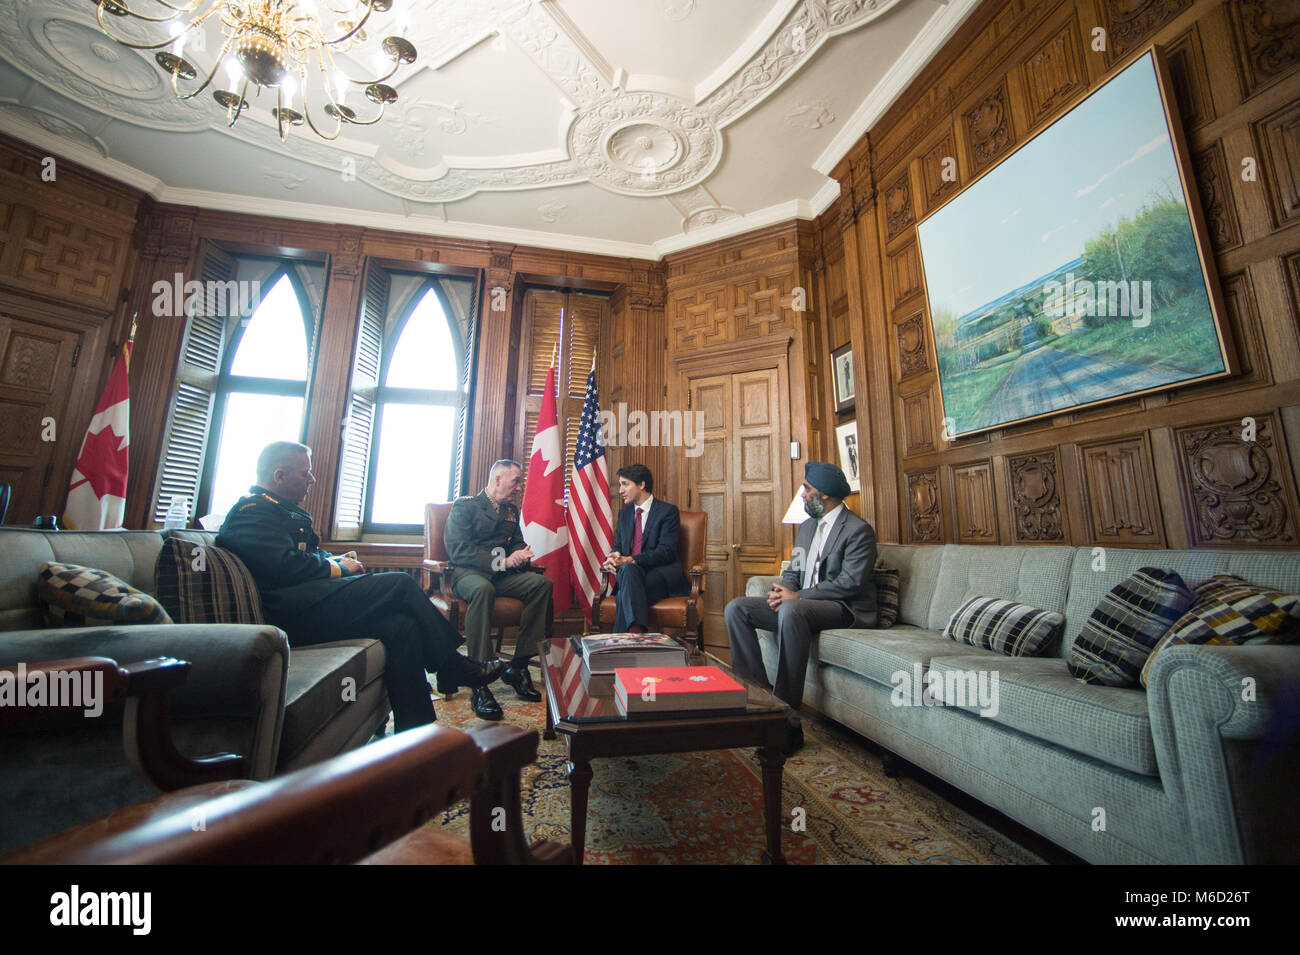 Justin Trudeau, center right, Prime Minister of Canada, meets with U.S. Marine Corps Gen. Joe Dunford, center left, chairman of the Joint Chiefs of Staff, Canadian Gen. Jonathan Vance, left, Canadian Armed Forces Chief of Defence Staff, and Harjit Singh Sajjan, right, Canadian Minister of National Defence, in his office in the Canadian Parliament buildings, Ottawa, Canada, Feb. 28, 2018. Gen. Dunford was in Ottawa for meetings with senior Canadian officials on the ongoing evolution of the North American Aerospace Defense Command. (DoD Photo by U.S. Army Sgt. James K. McCann) Stock Photo